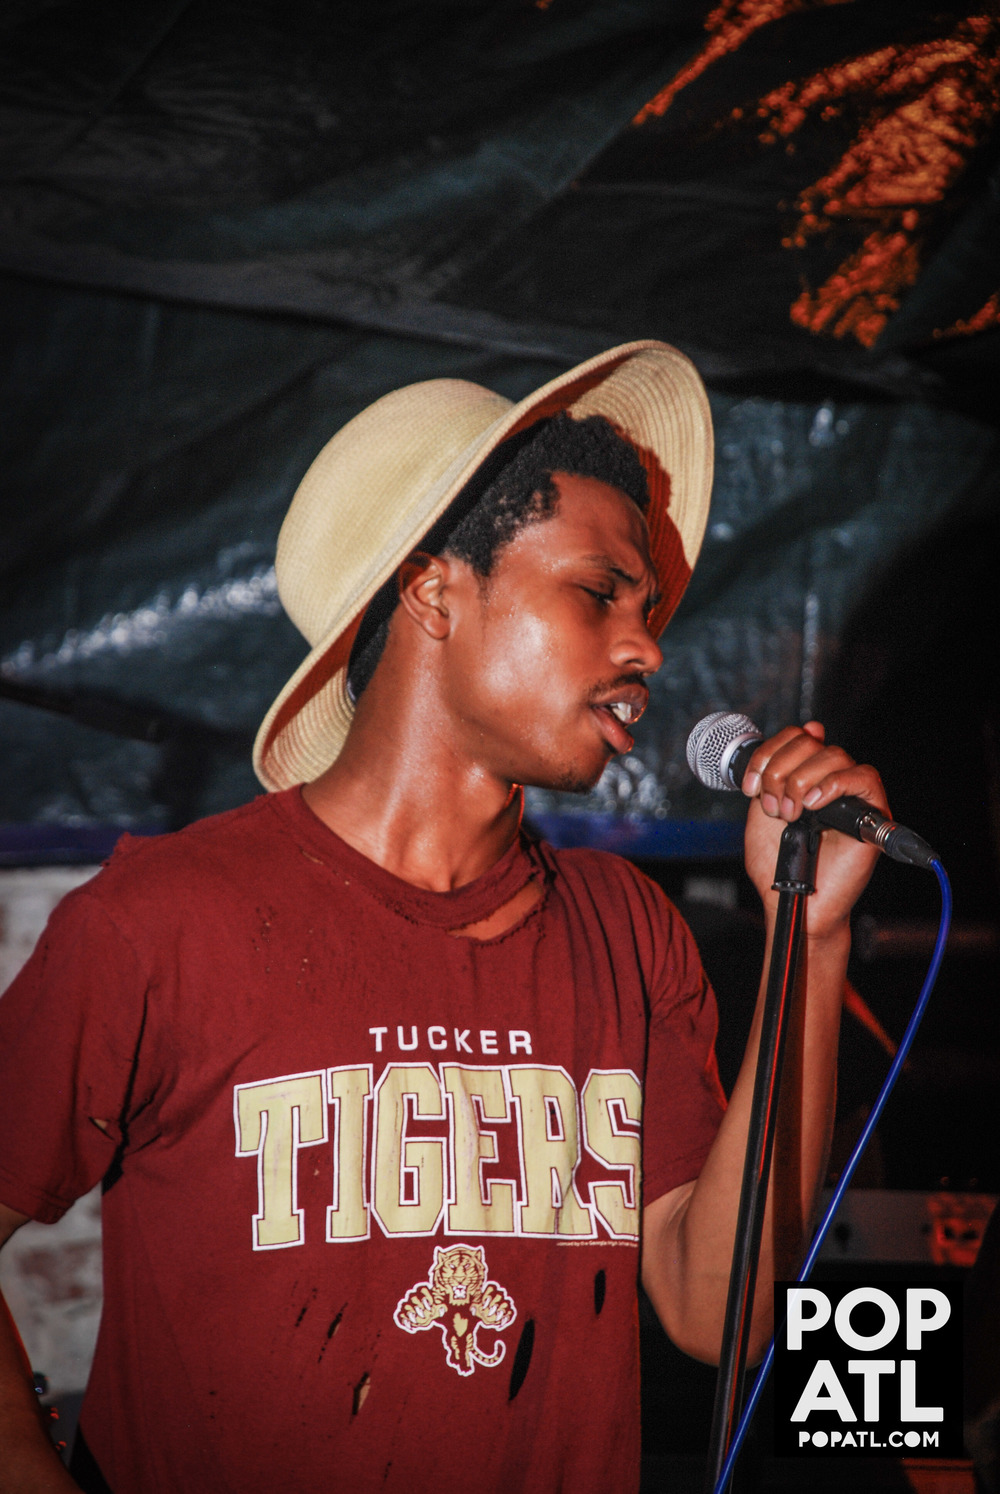 RAURY-RAURFEST-AT-POP-ATL-148.jpg